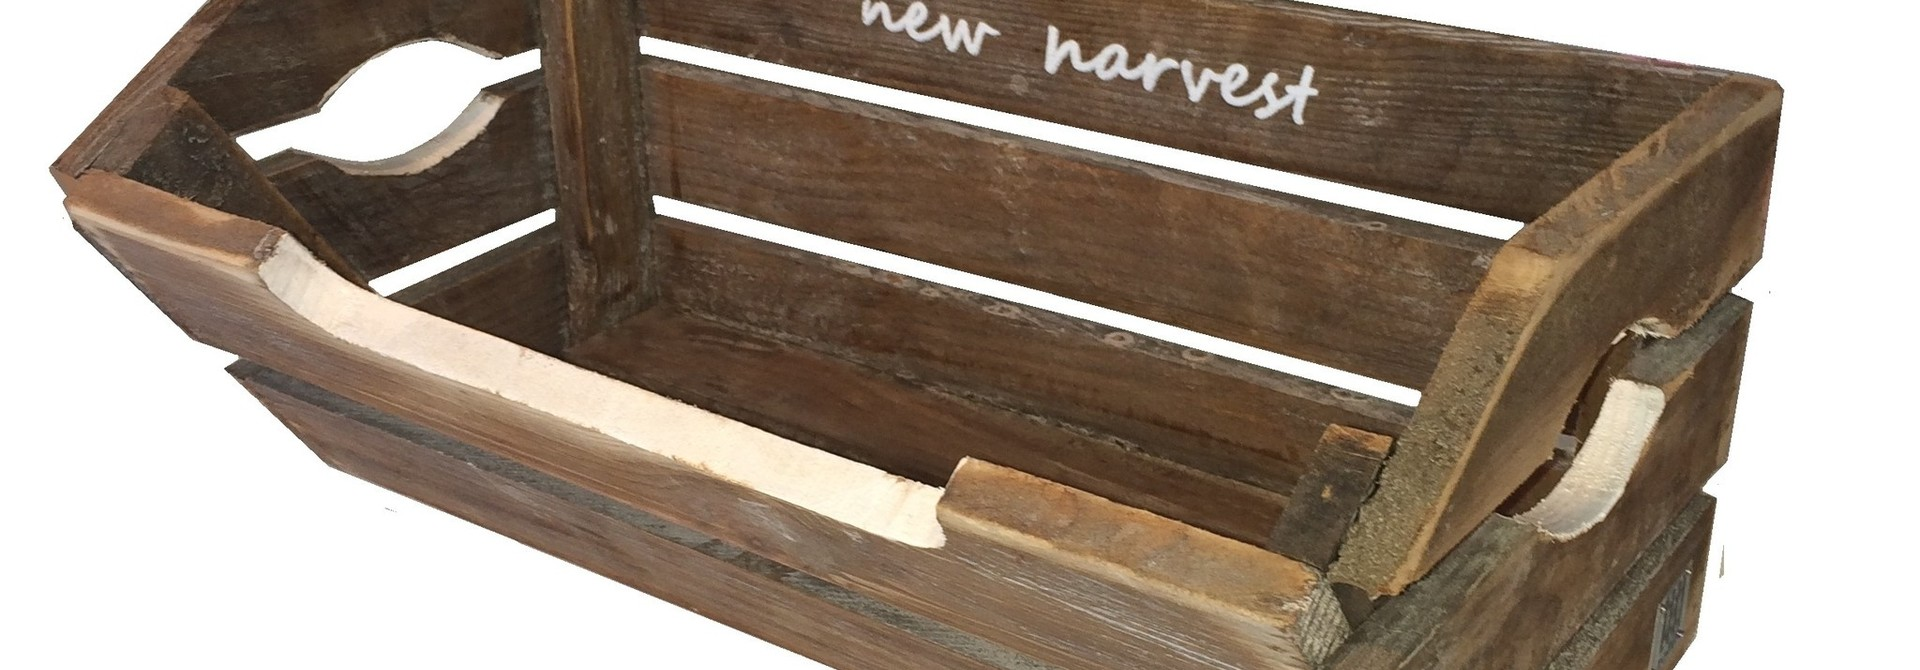 home deco brussels brown harvest crate T